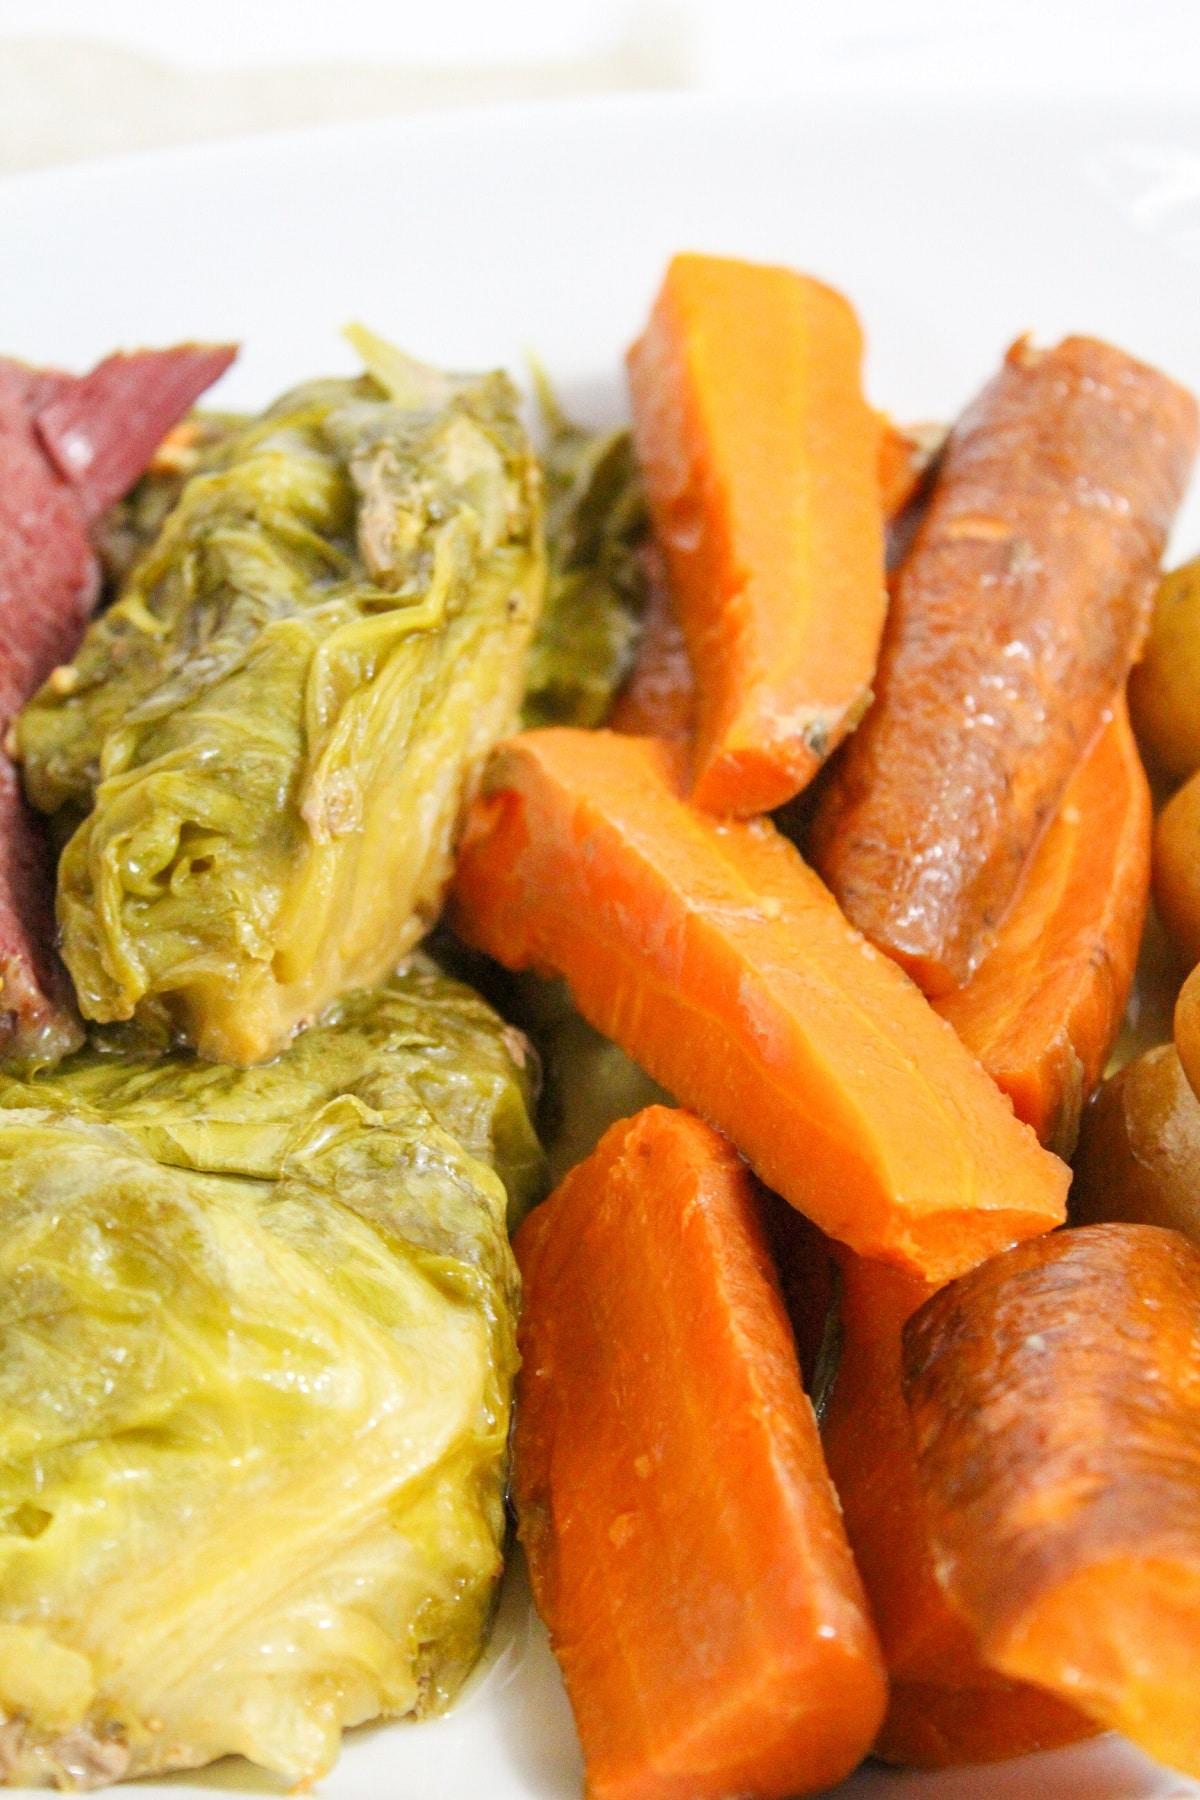 cooked carrots and cabbage